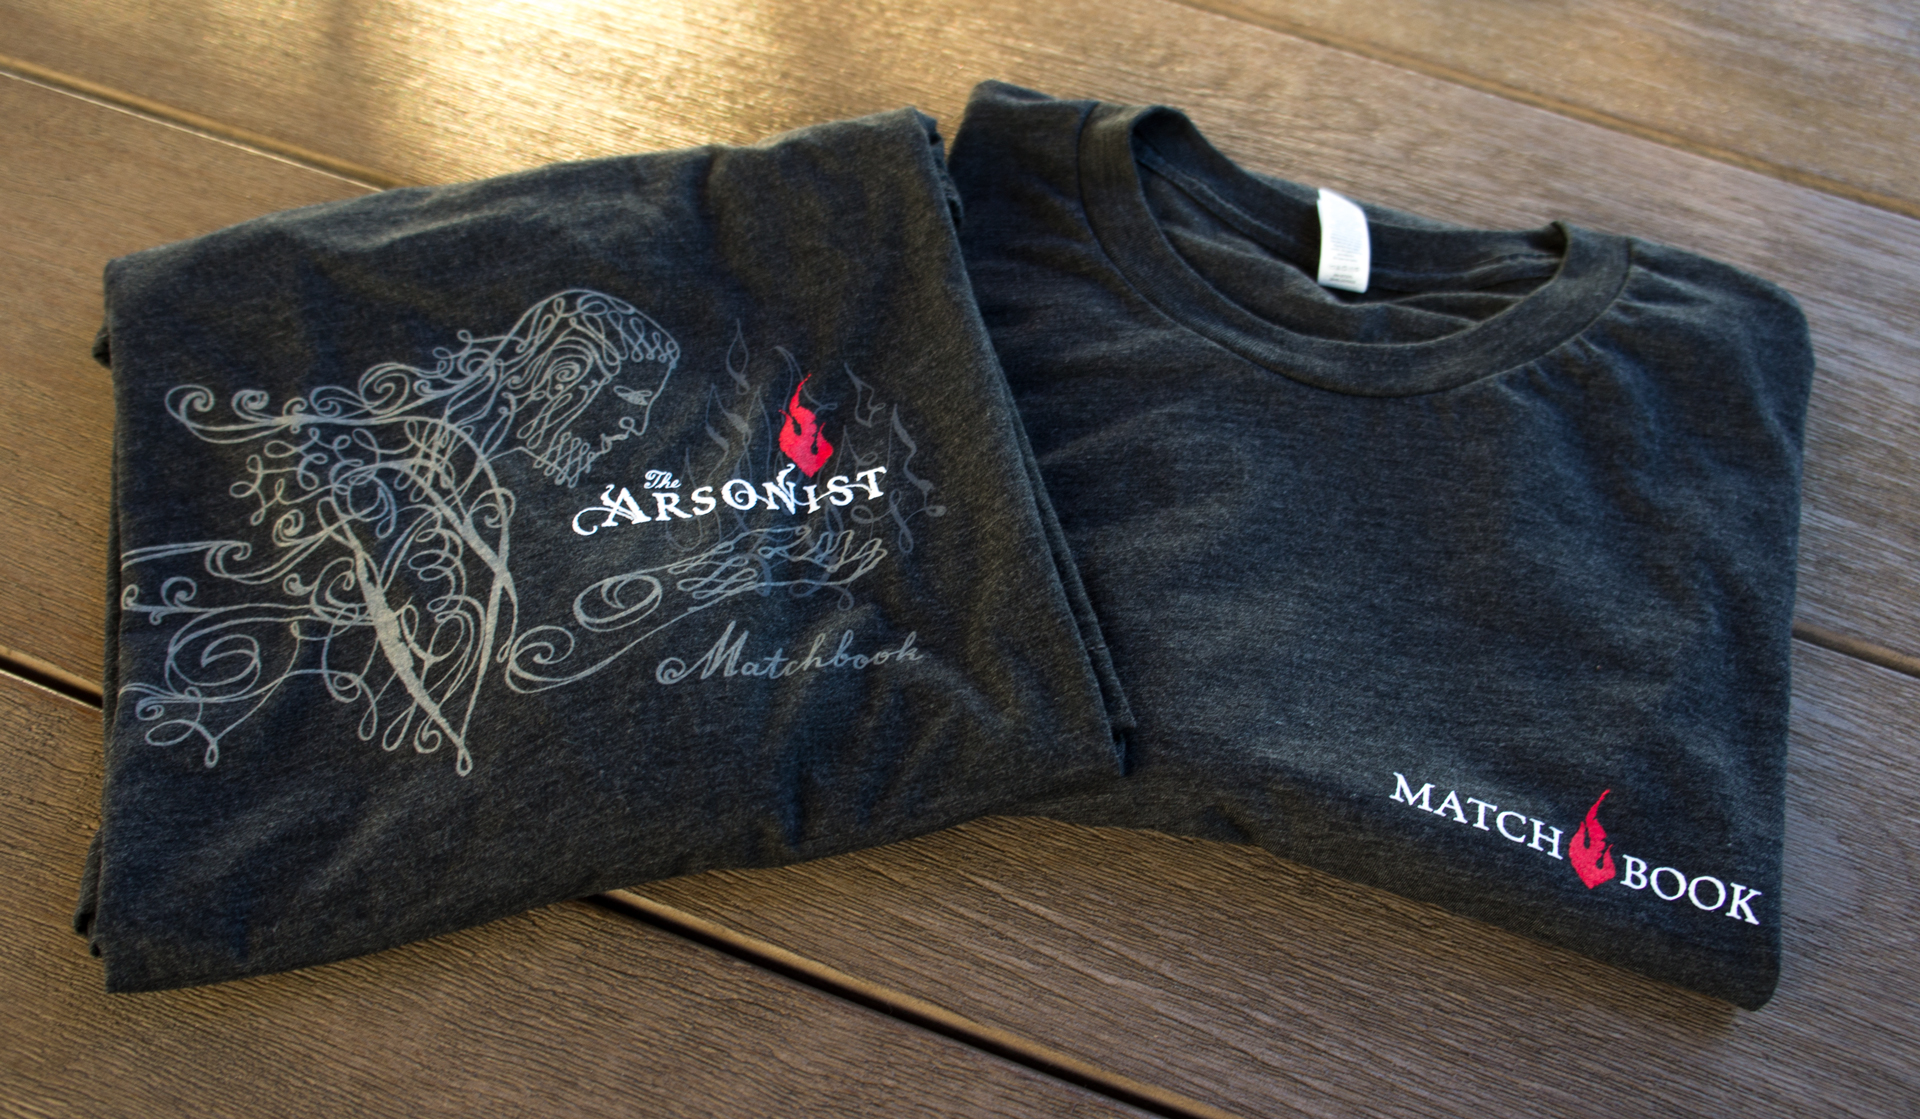 T-Shirts - Matchbook Product Image